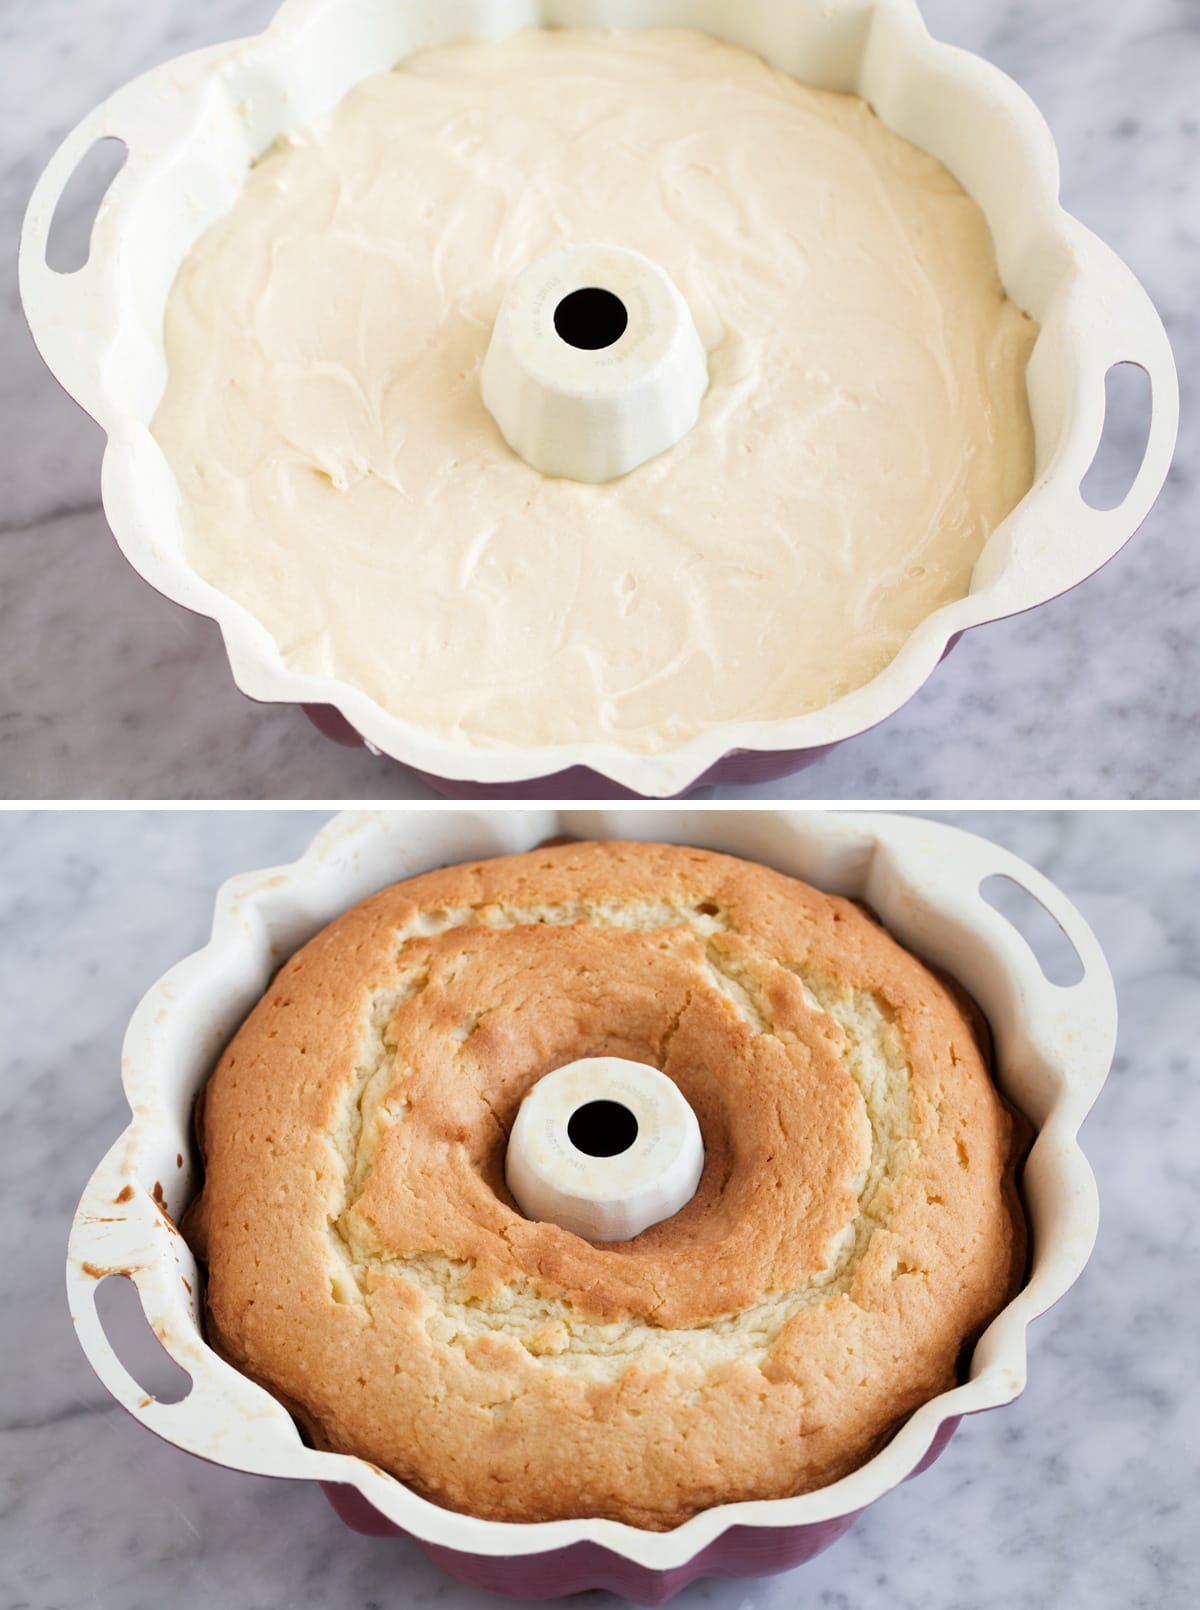 Pound cake batter in a bundt pan before and then shown after baking.